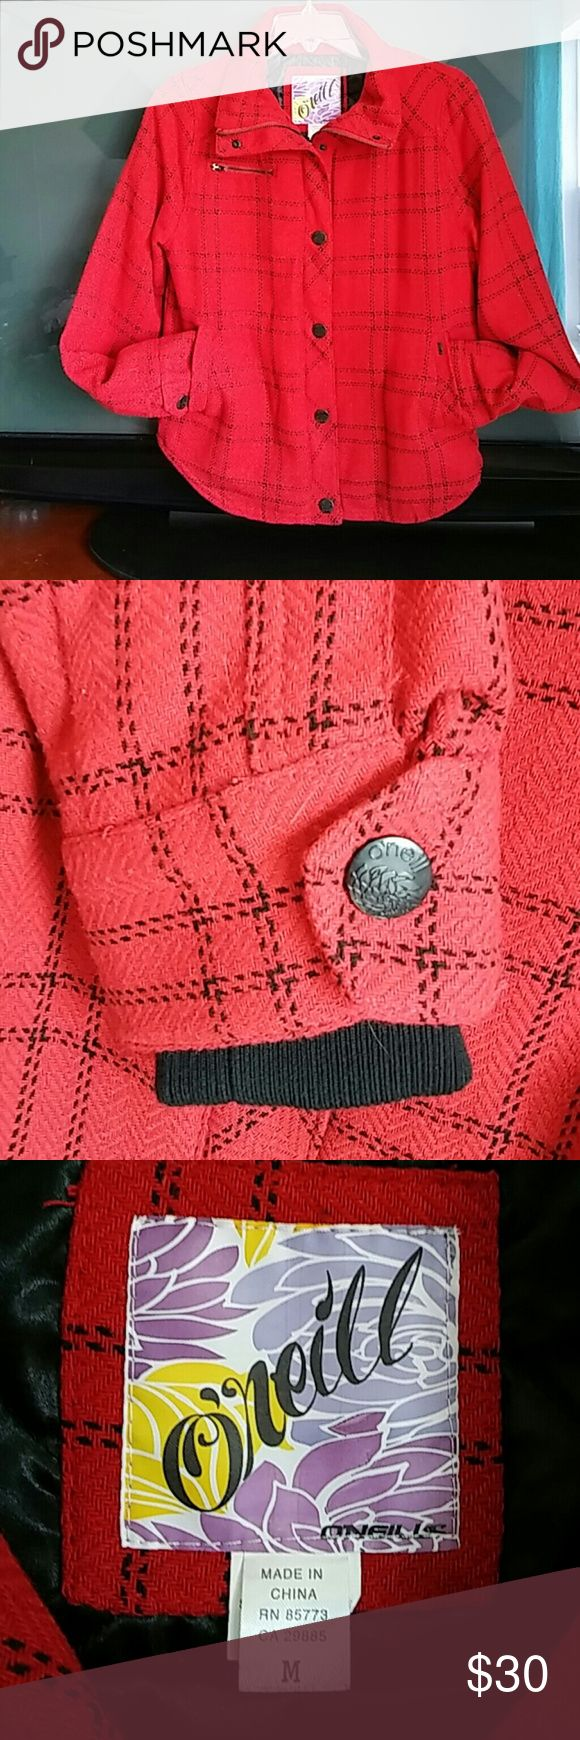 O'Neill lined jacket Red with black shirt tail insulated jacket Never worn O'Neill Jackets & Coats Lightweight & Shirt Jackets